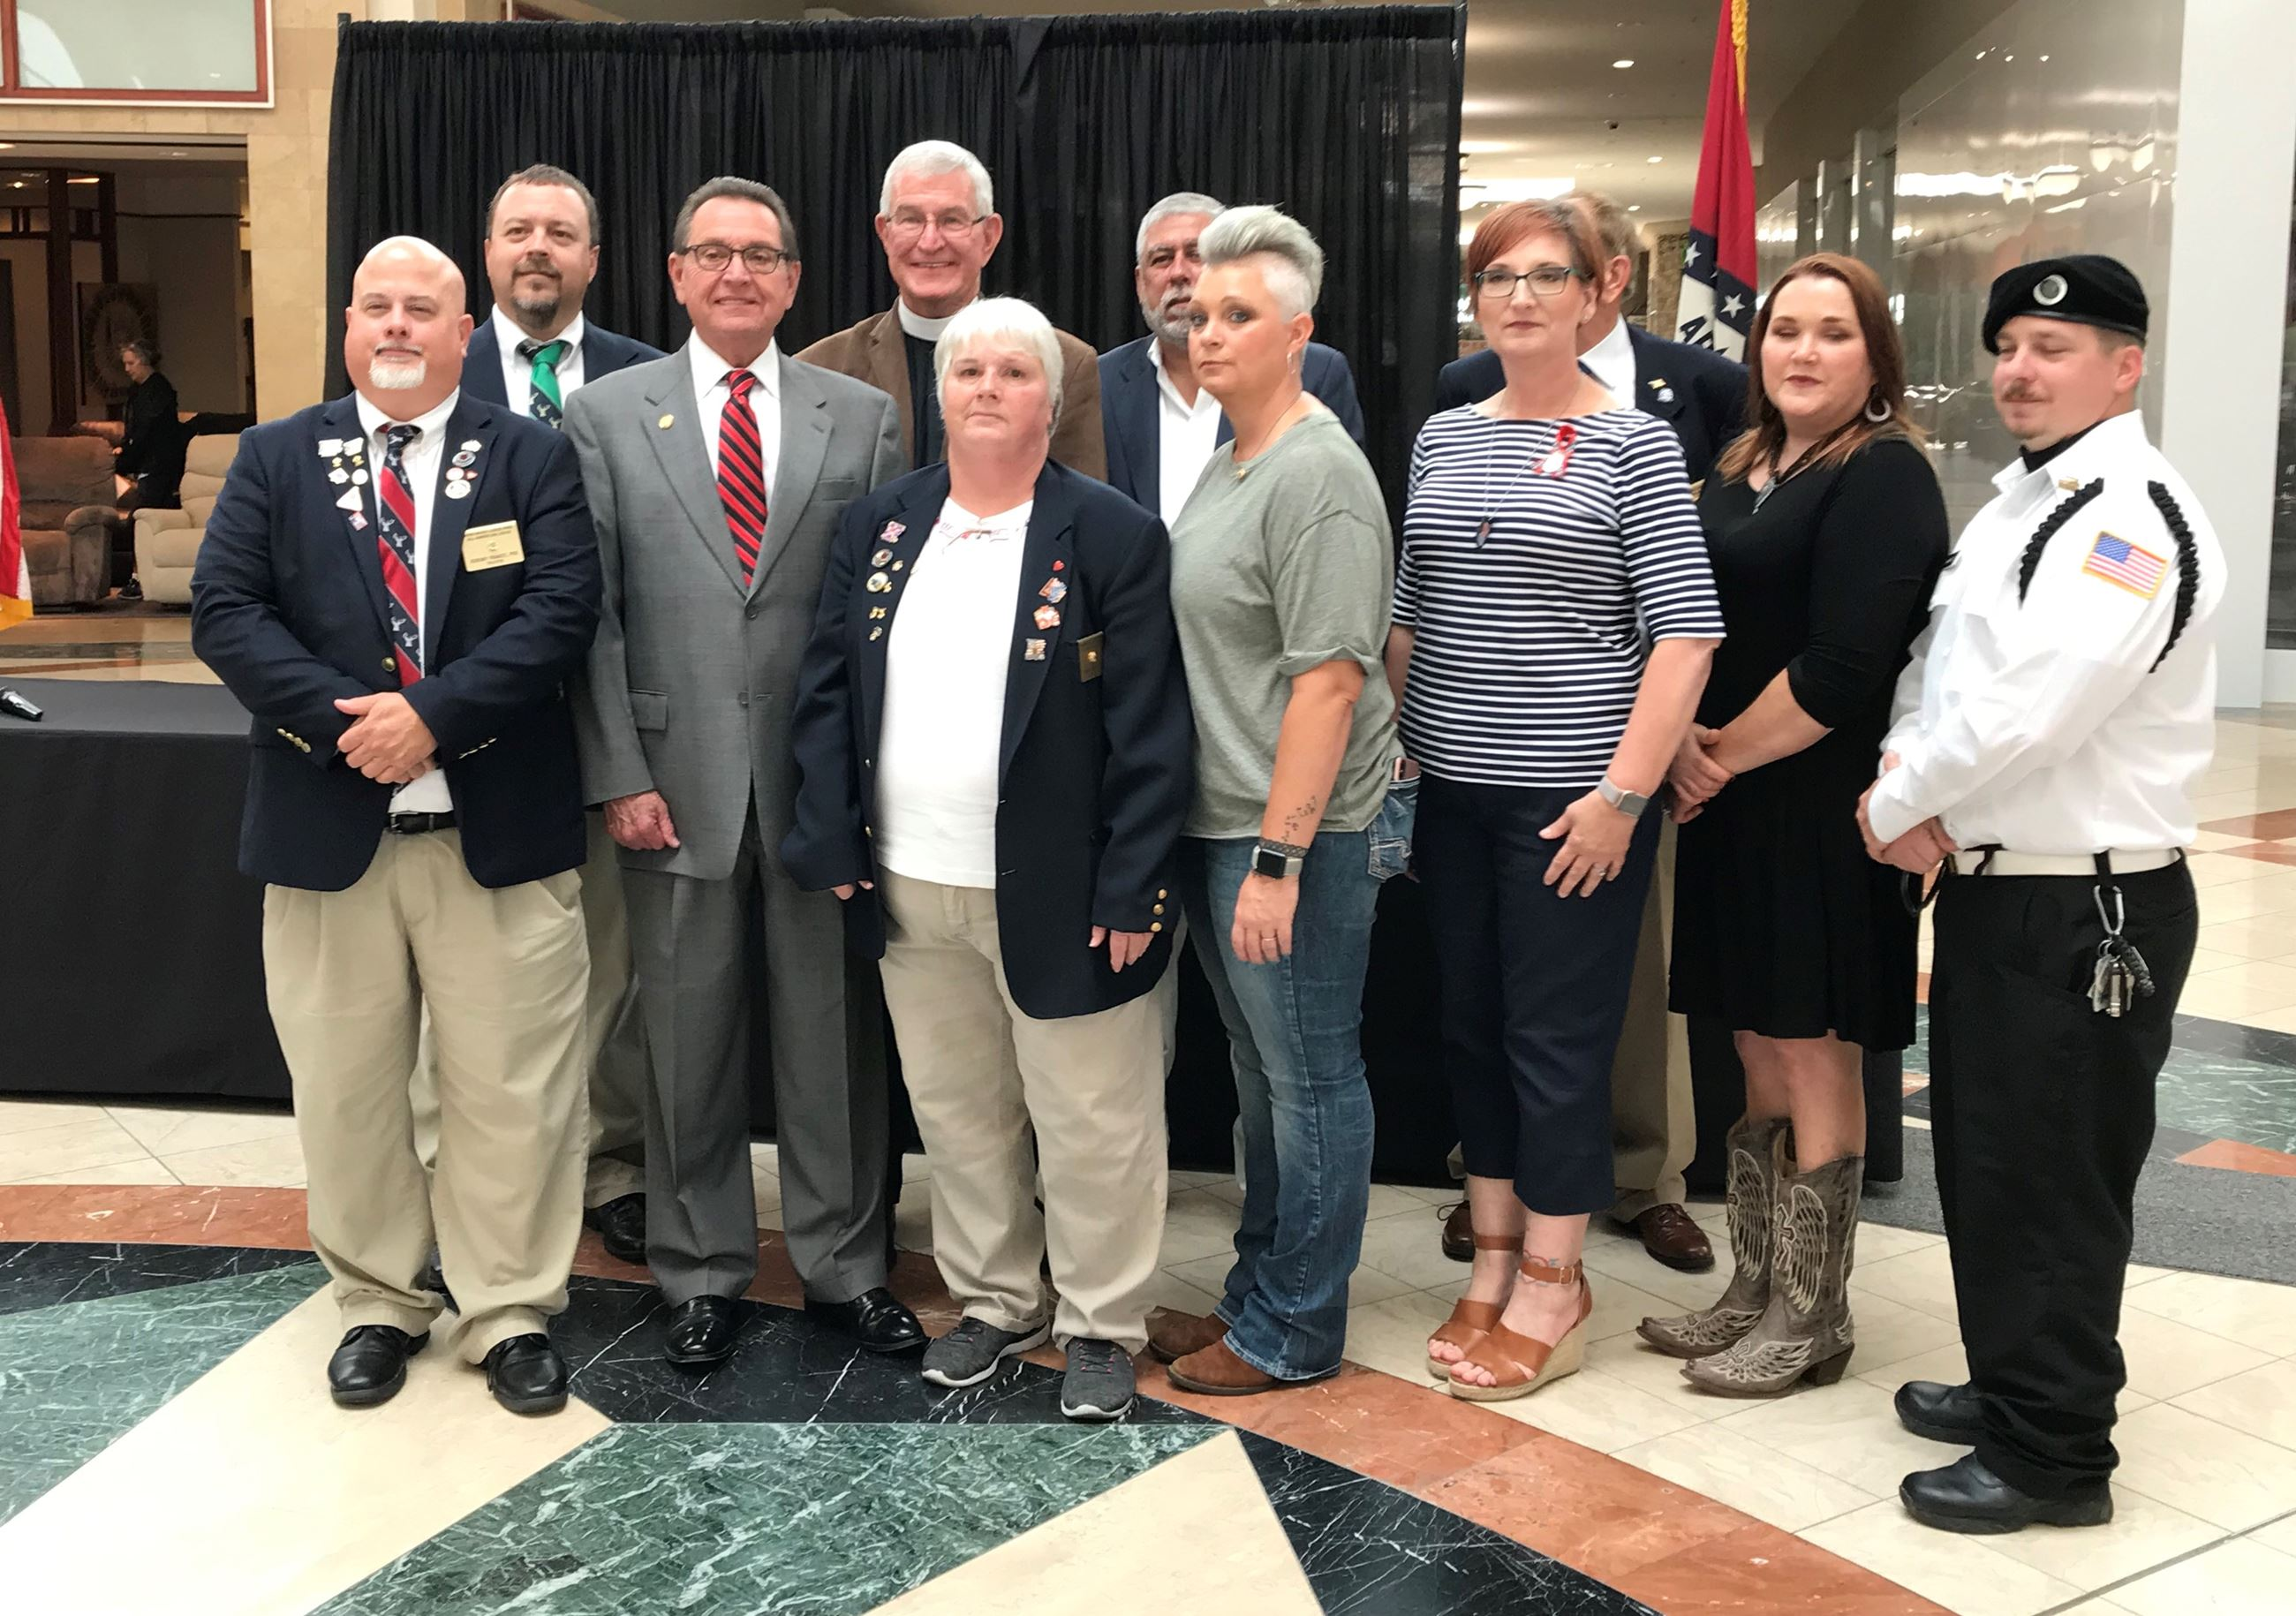 Mayor Perrin and Reverend Stuart Hoke along with members of the Jonesboro Elks Lodge.